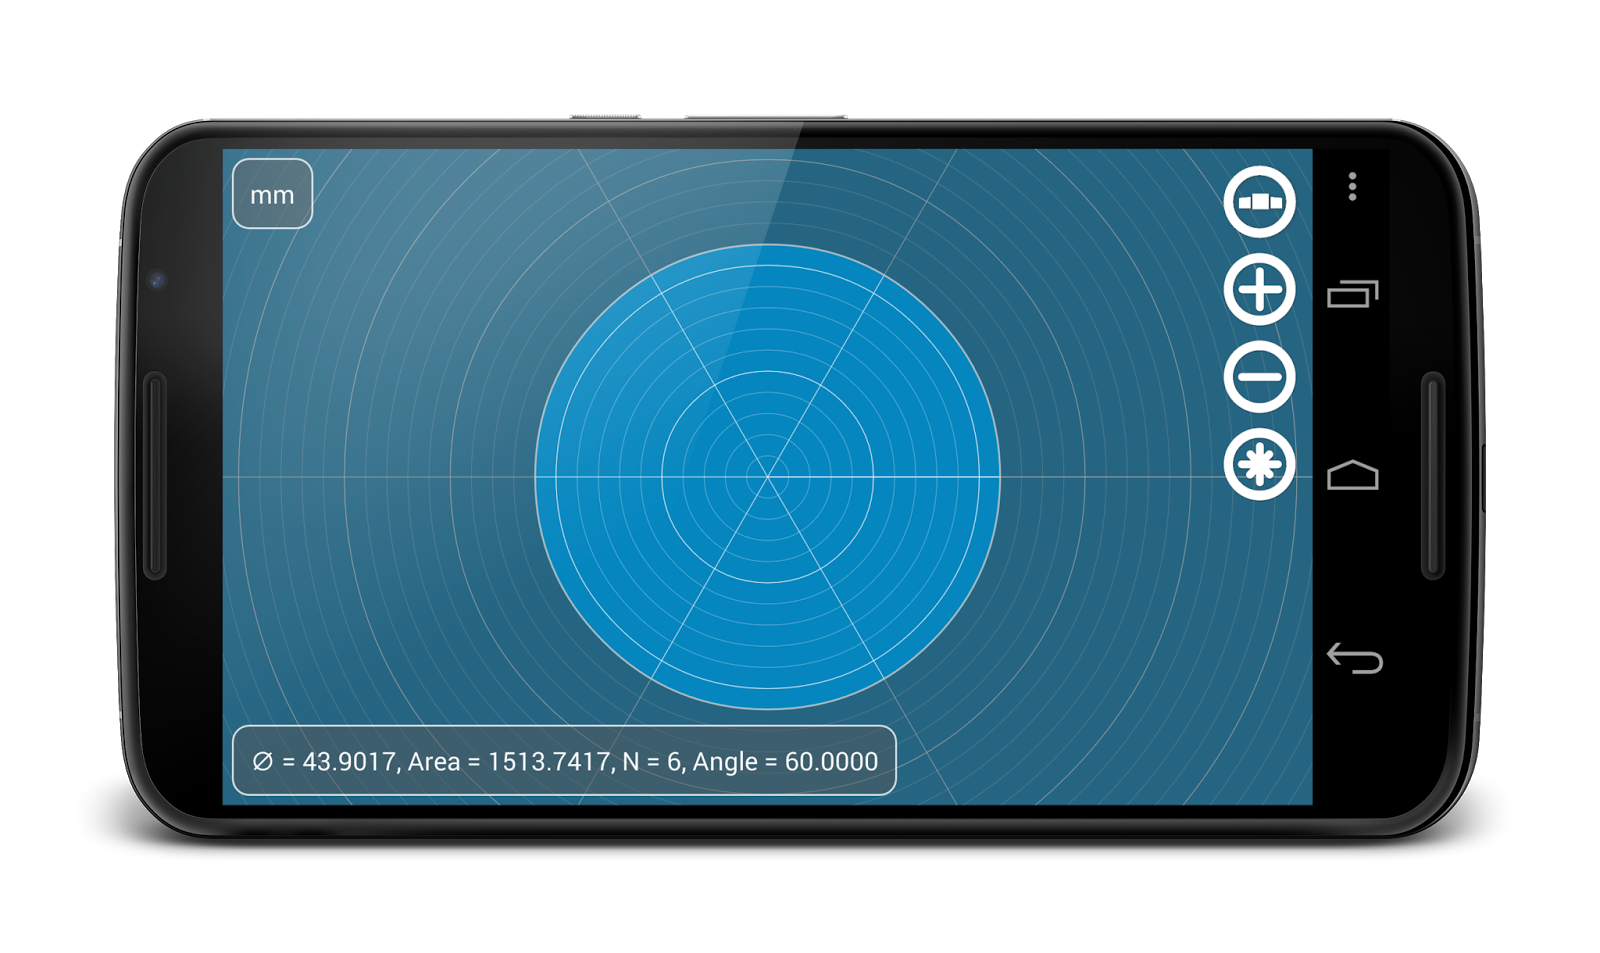 Circle Area on the screen